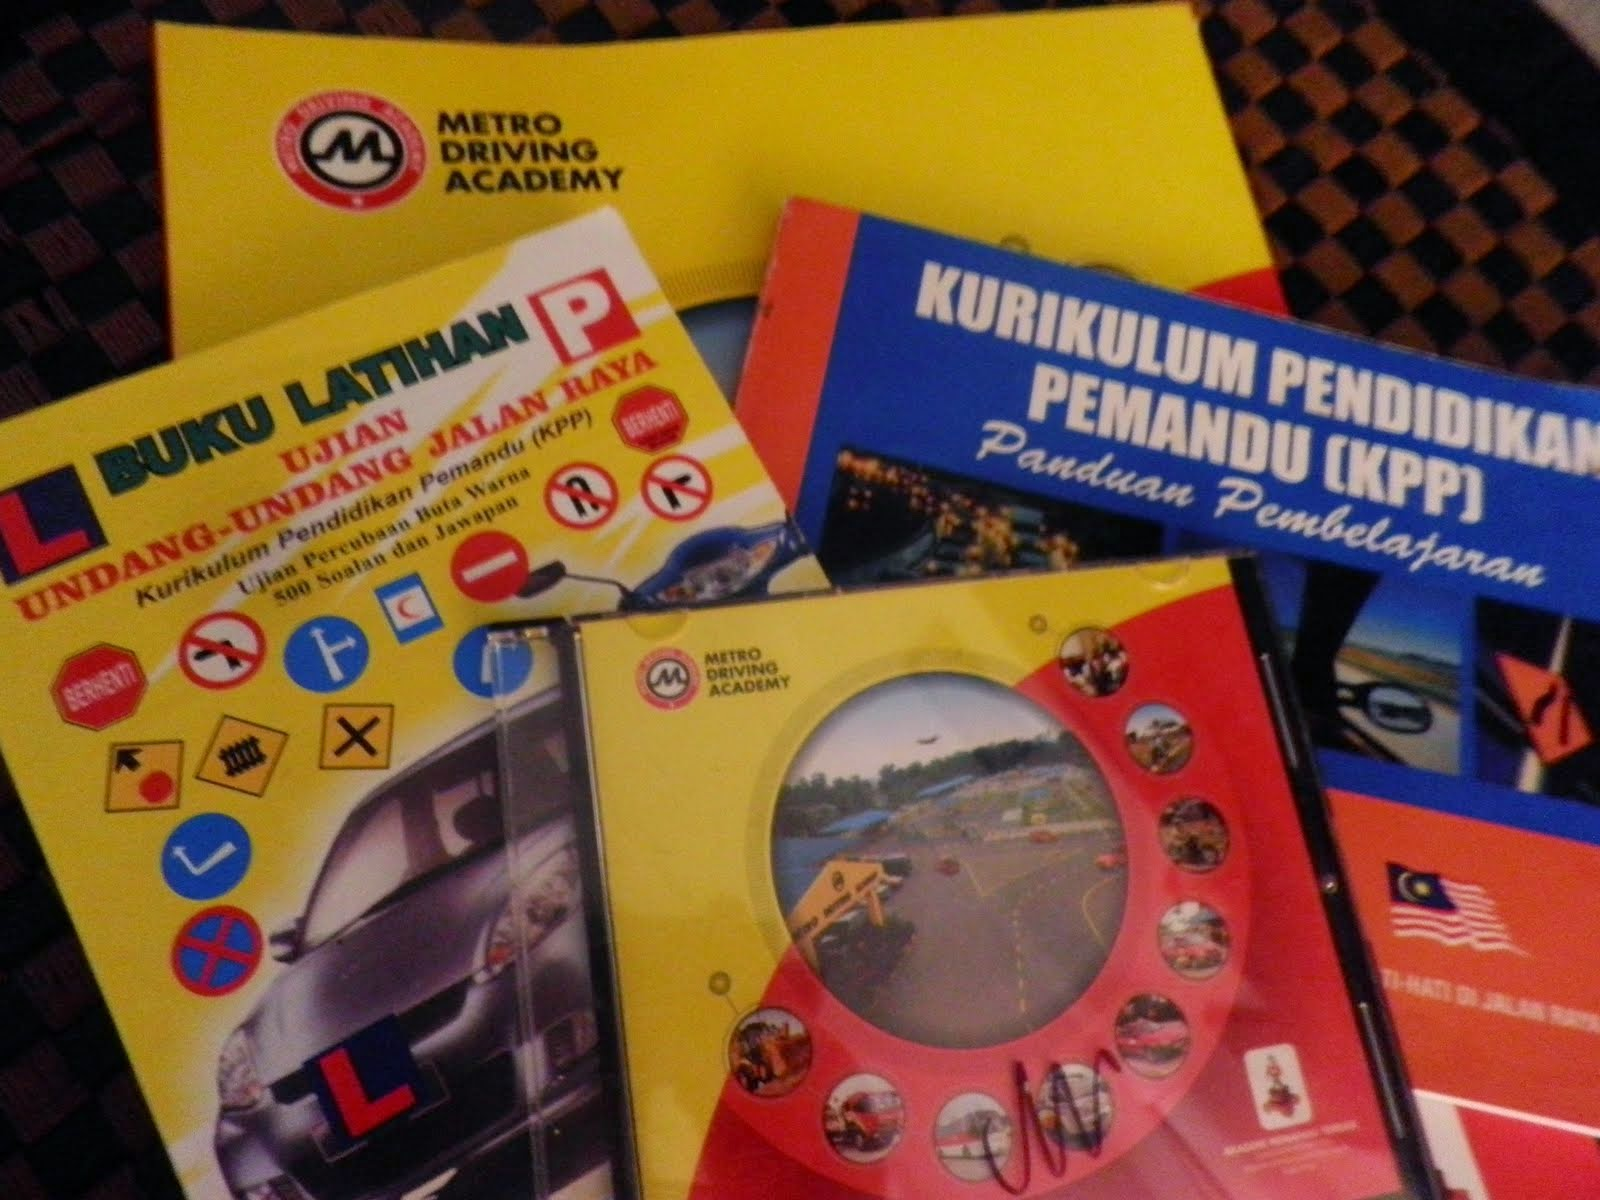 Image from kj driving school